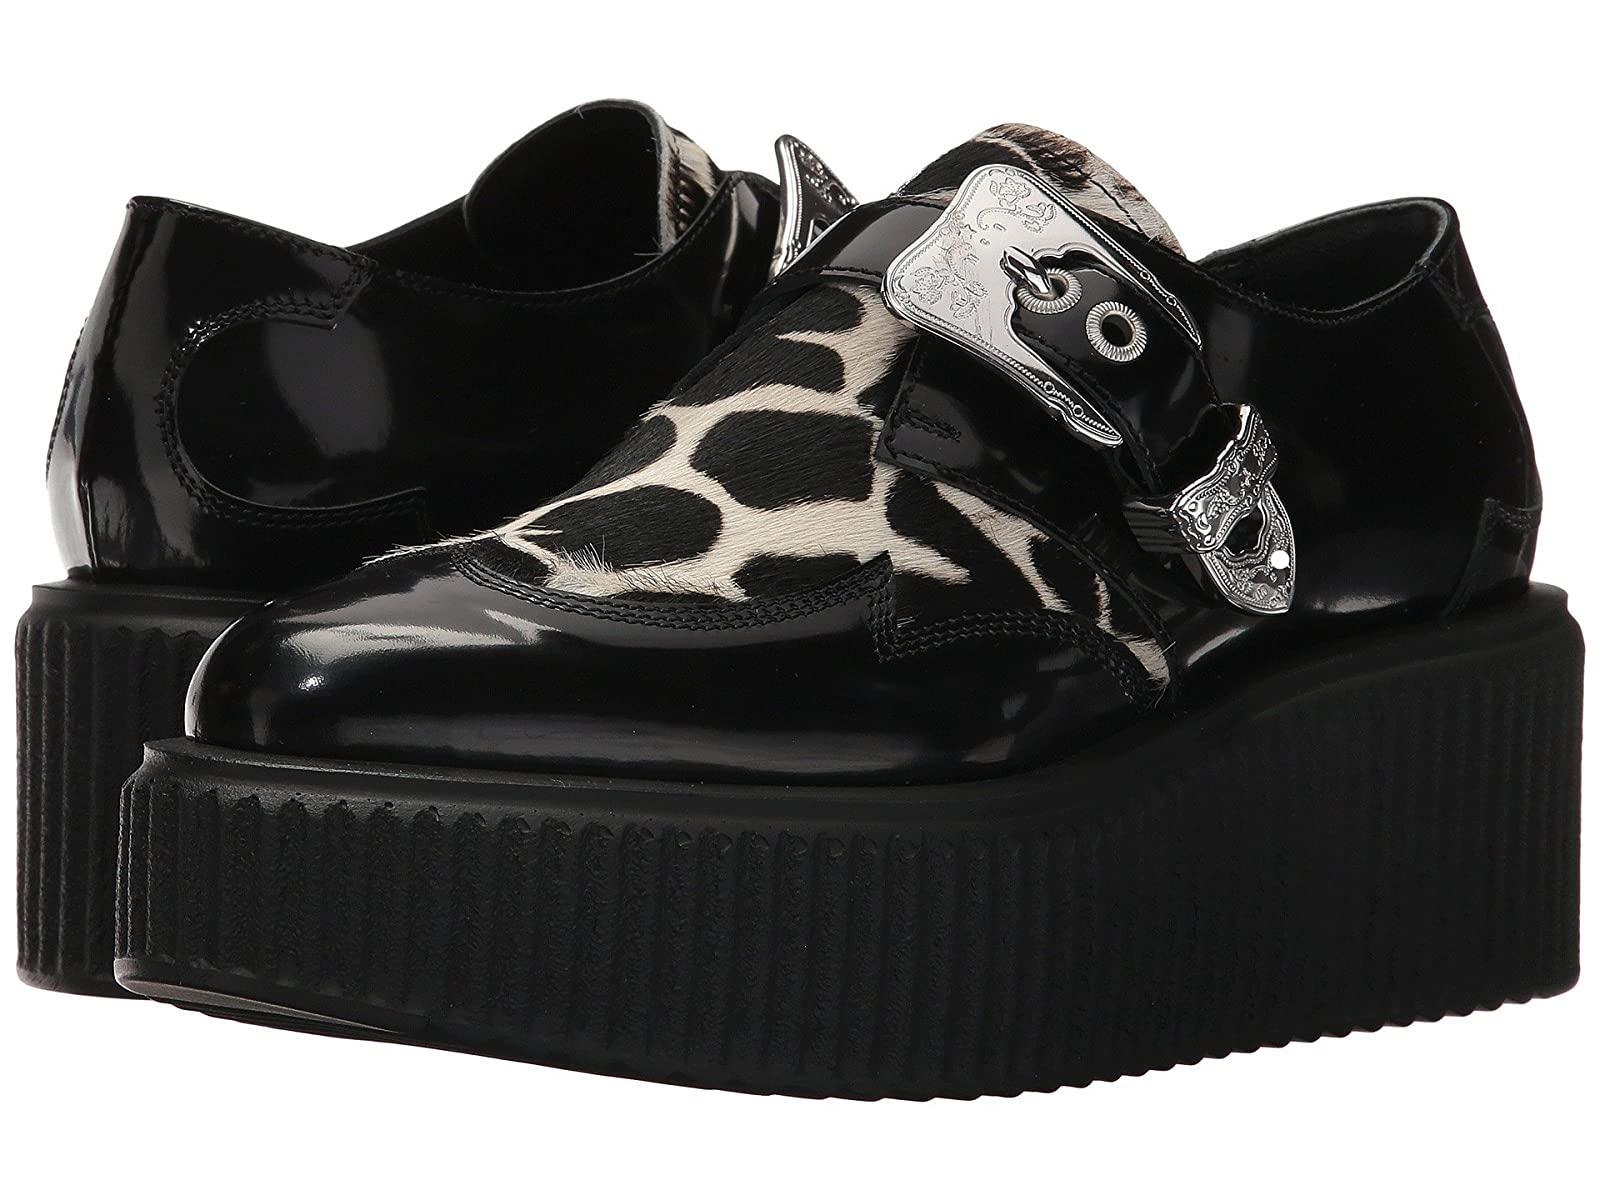 McQ Nevada CreeperCheap and distinctive eye-catching shoes